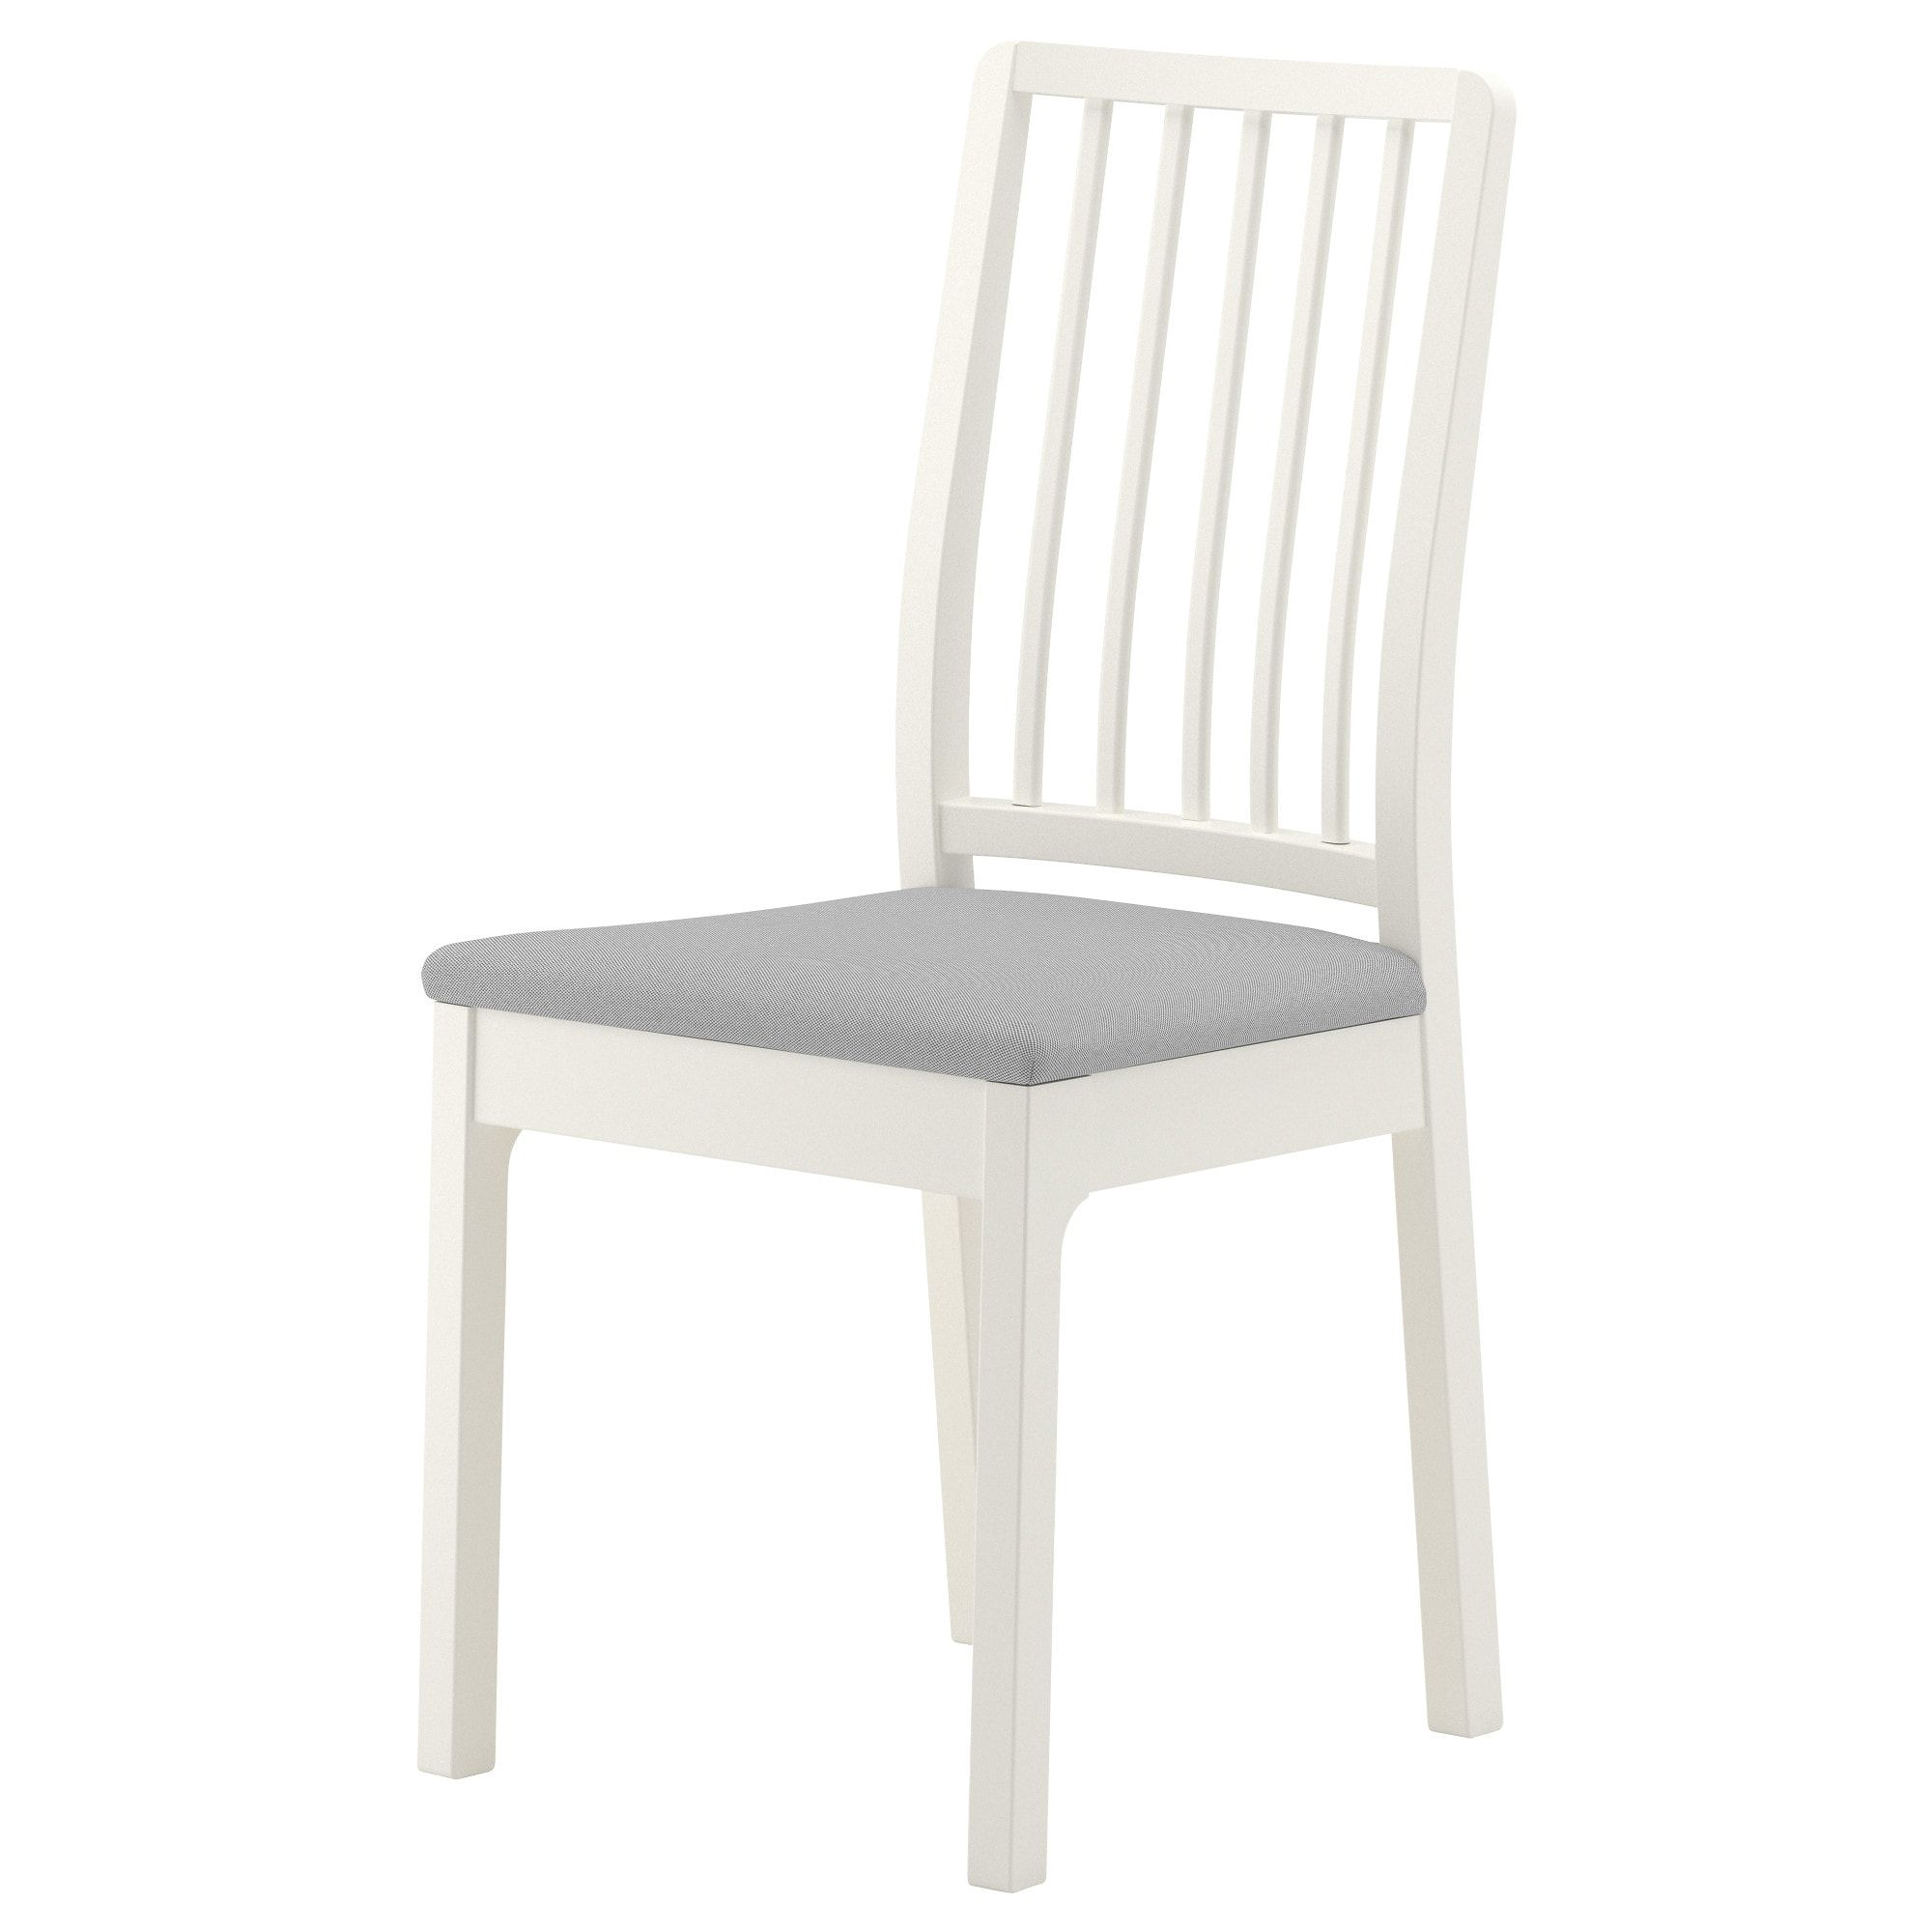 IKEA EKEDALEN White, Orrsta Light Gray Chair Lake